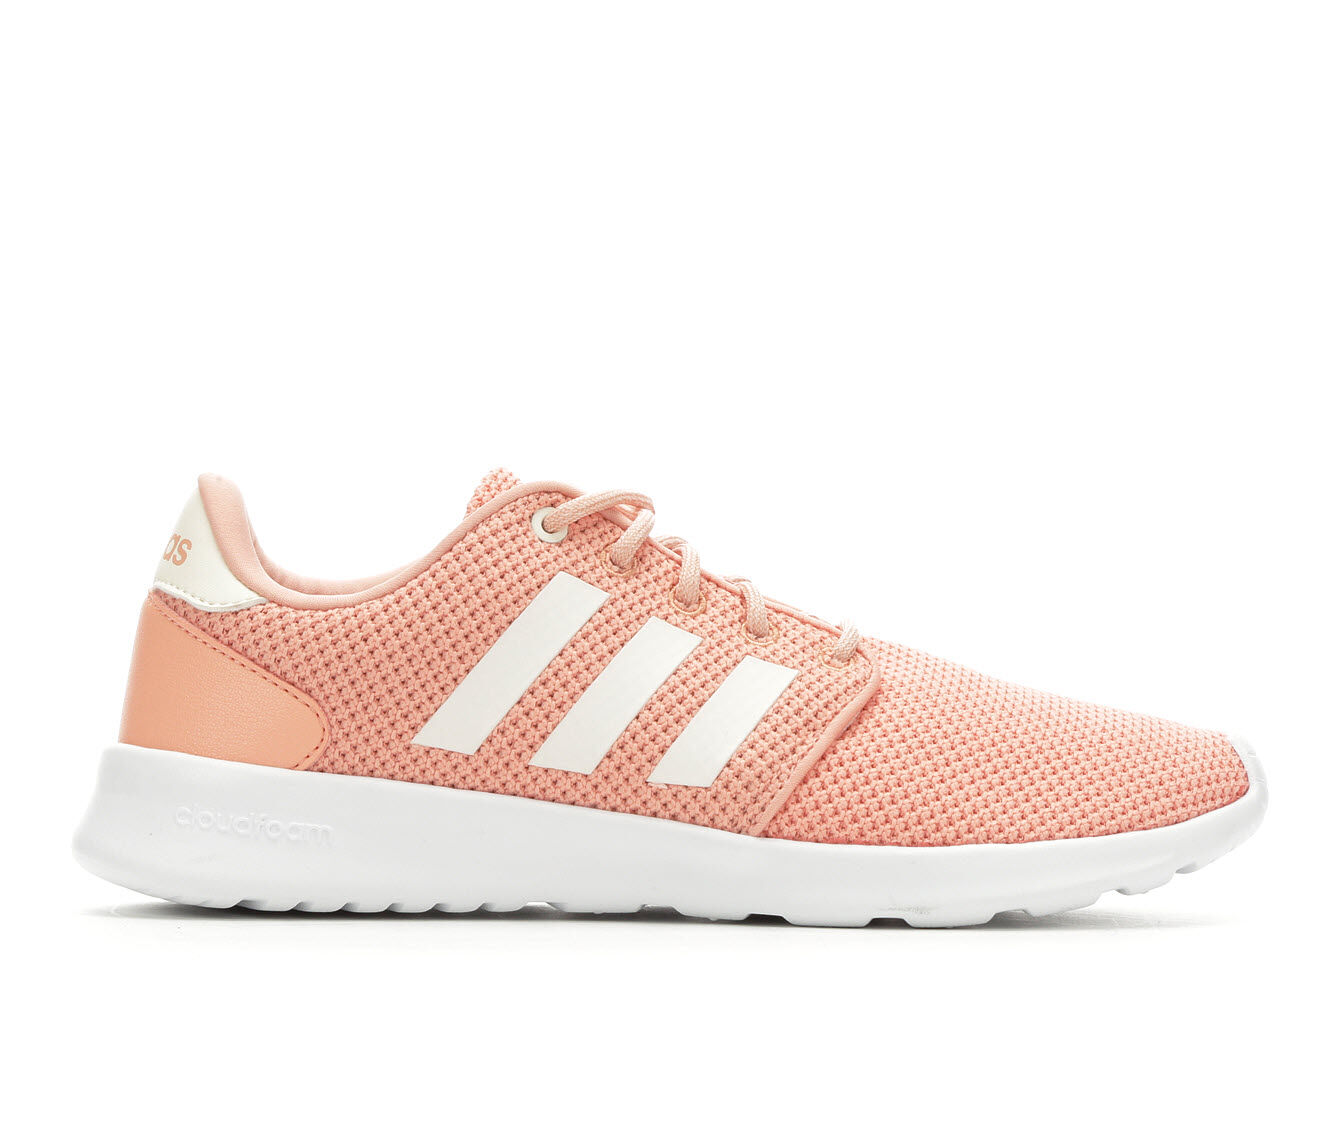 Women's Adidas Cloudfoam QT Racer Sneakers Dust Pink/White